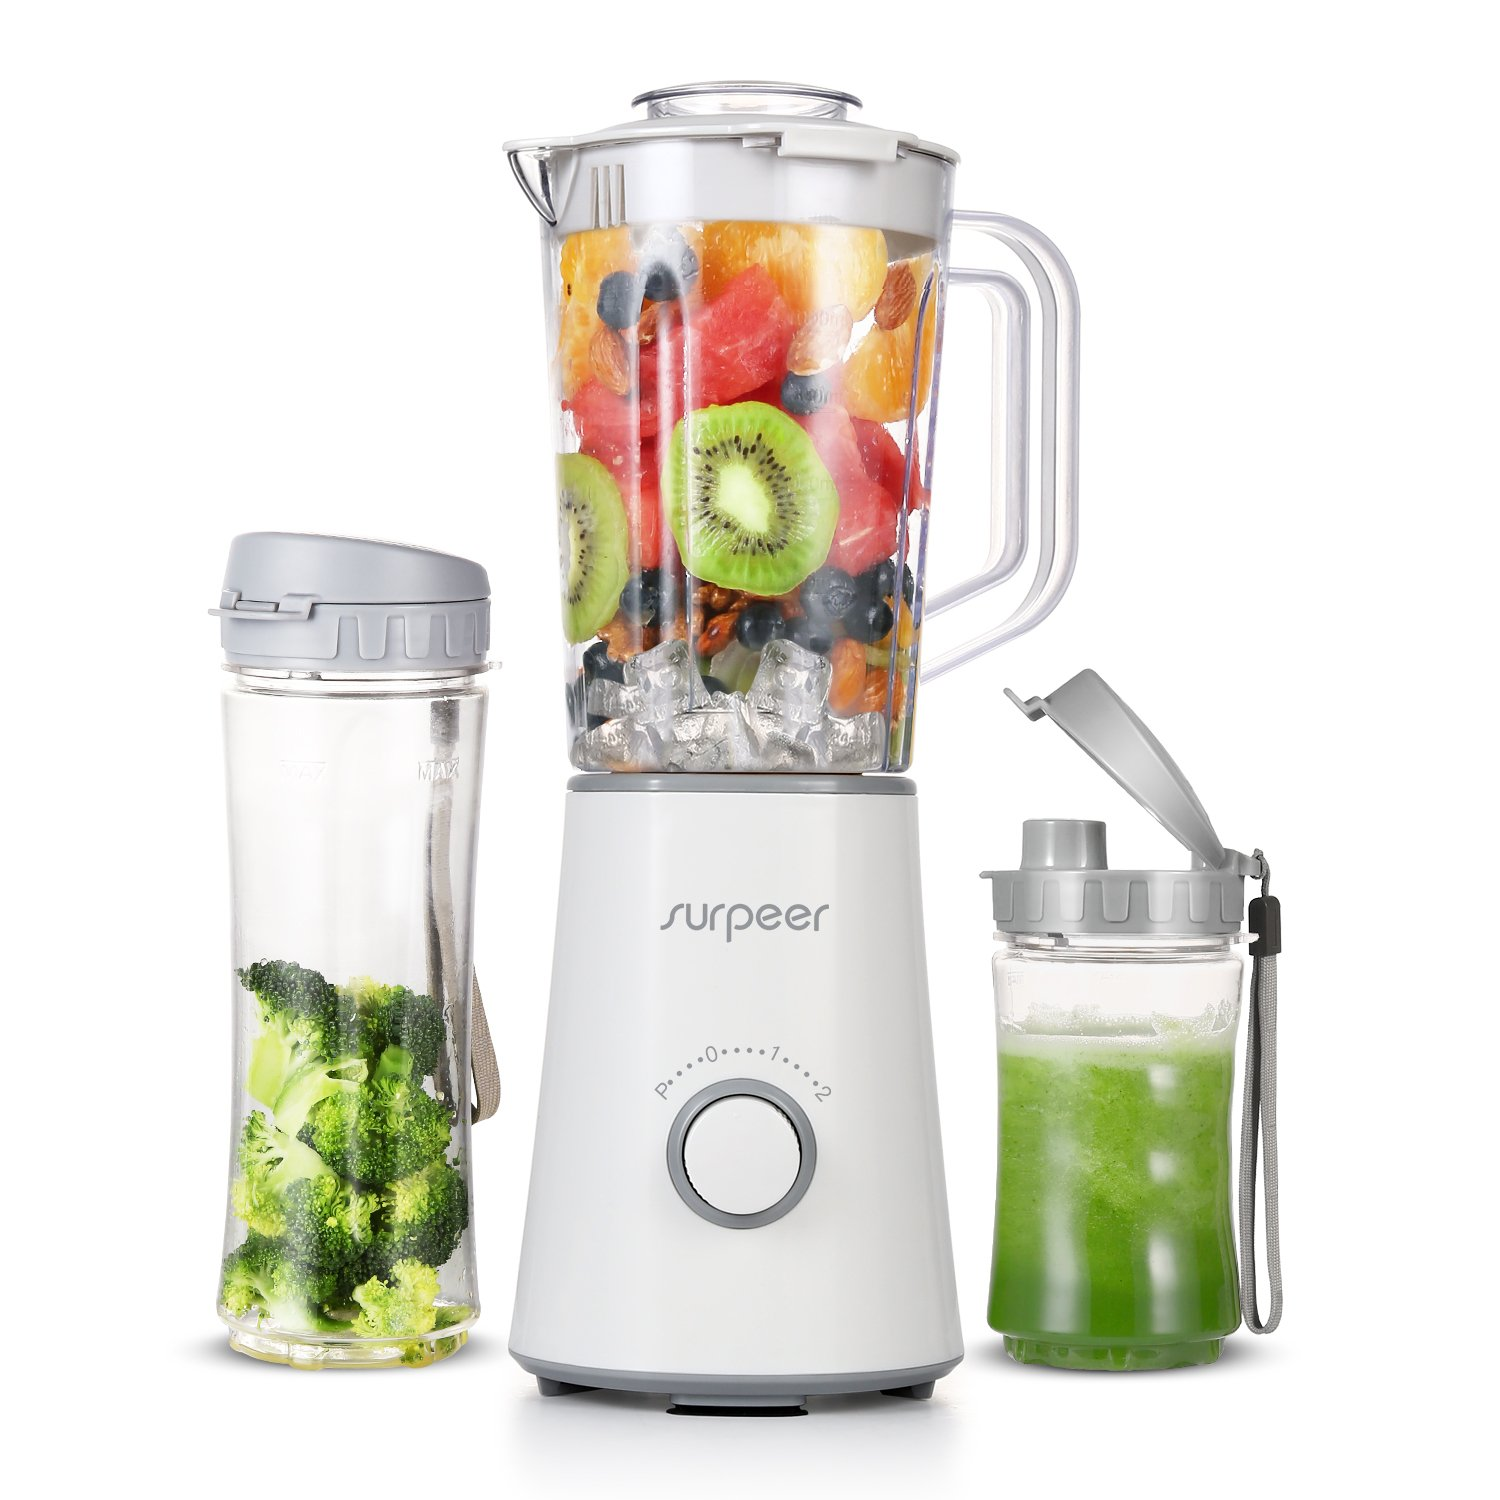 Smoothie Blenders, SURPEER 350W ice blender and juicer, High-Speed Automatic fruit blender smoothie with Pure Copper Motor - 304 Stainless Steel Blade smoothie machine - smoothie maker - 2 Portable Bottle blender - Security Protection,Kitchen for Fruit\Veg